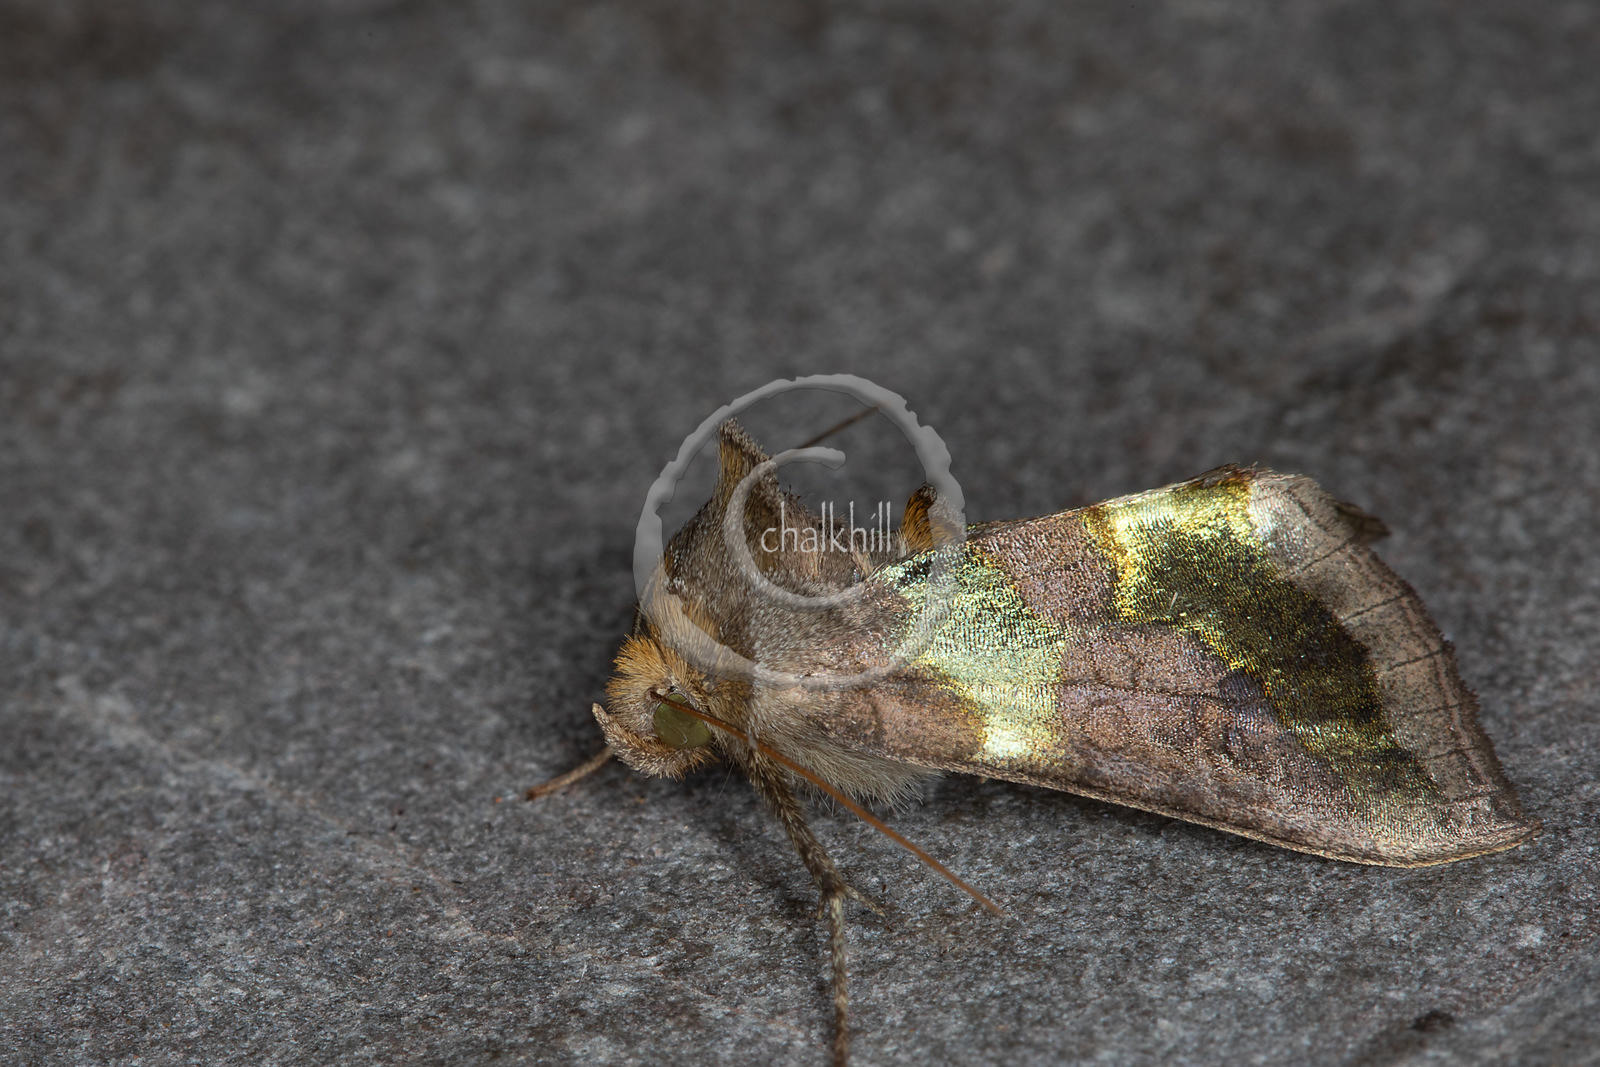 [Diachrysia chrysitis [73.012] Burnished Brass]-[GBR-Flatford Mill]